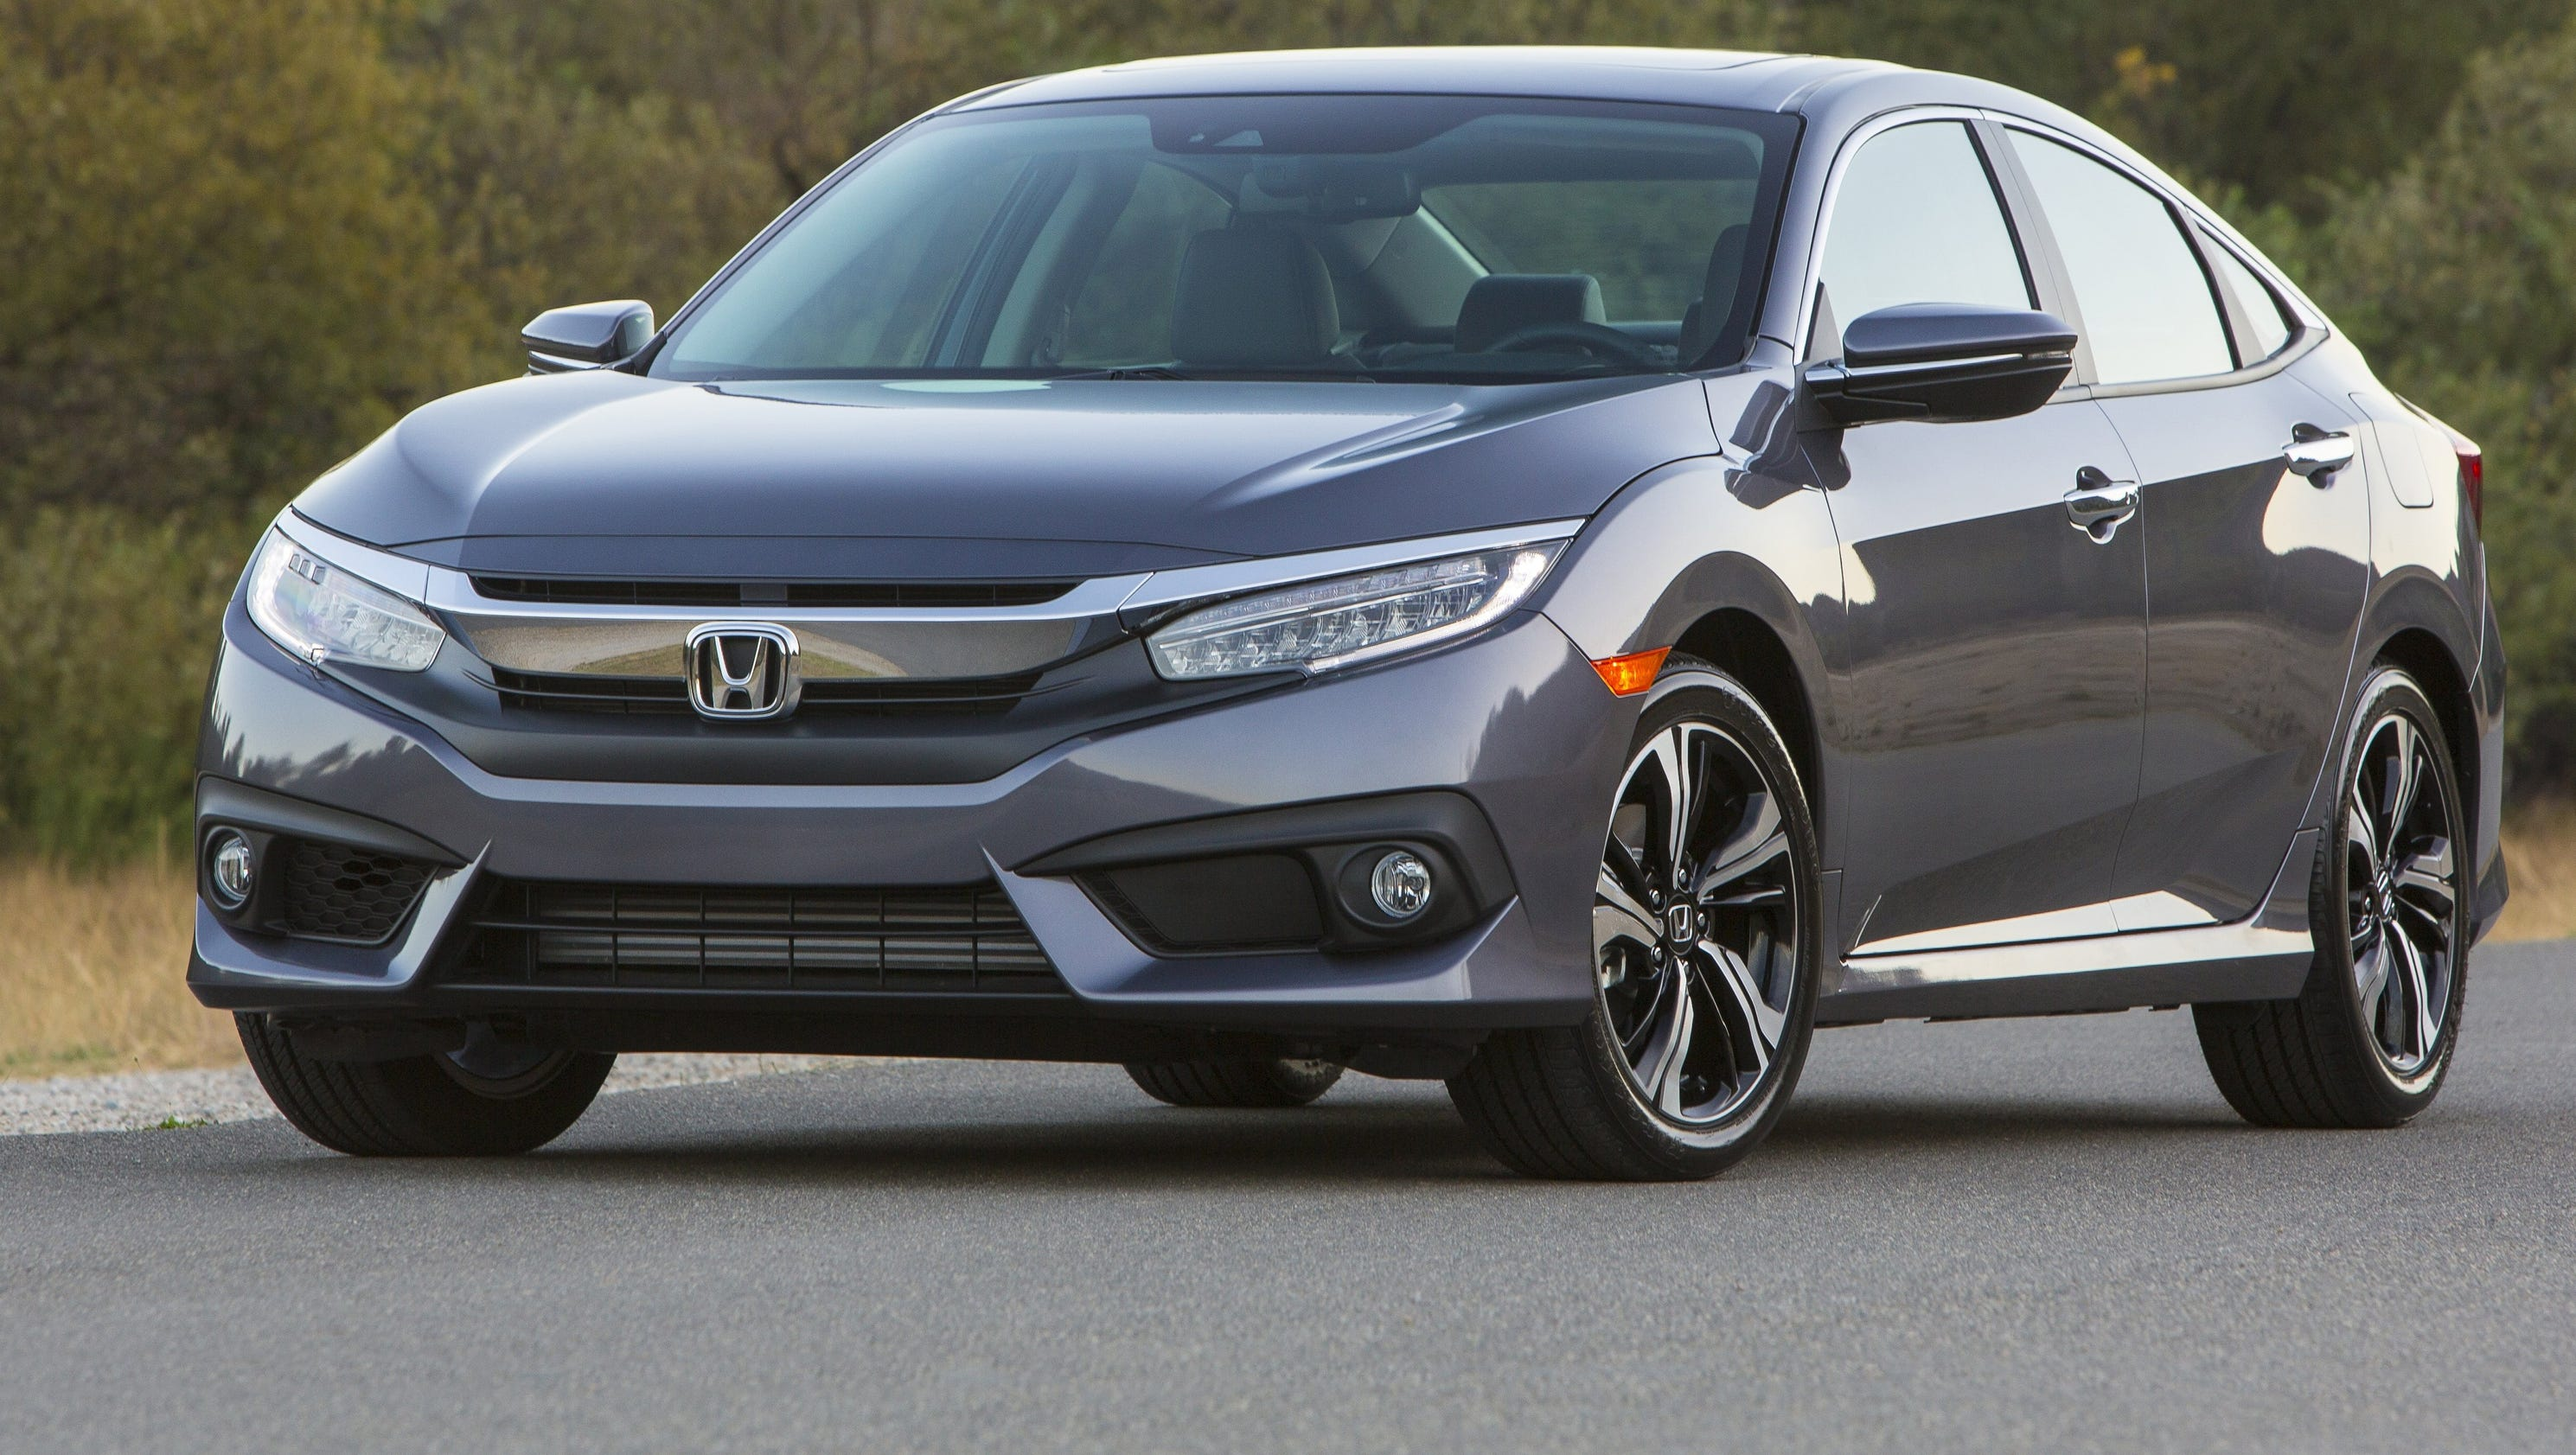 Honda 39 s new civic is larger more fuel efficient for Honda civic fuel economy